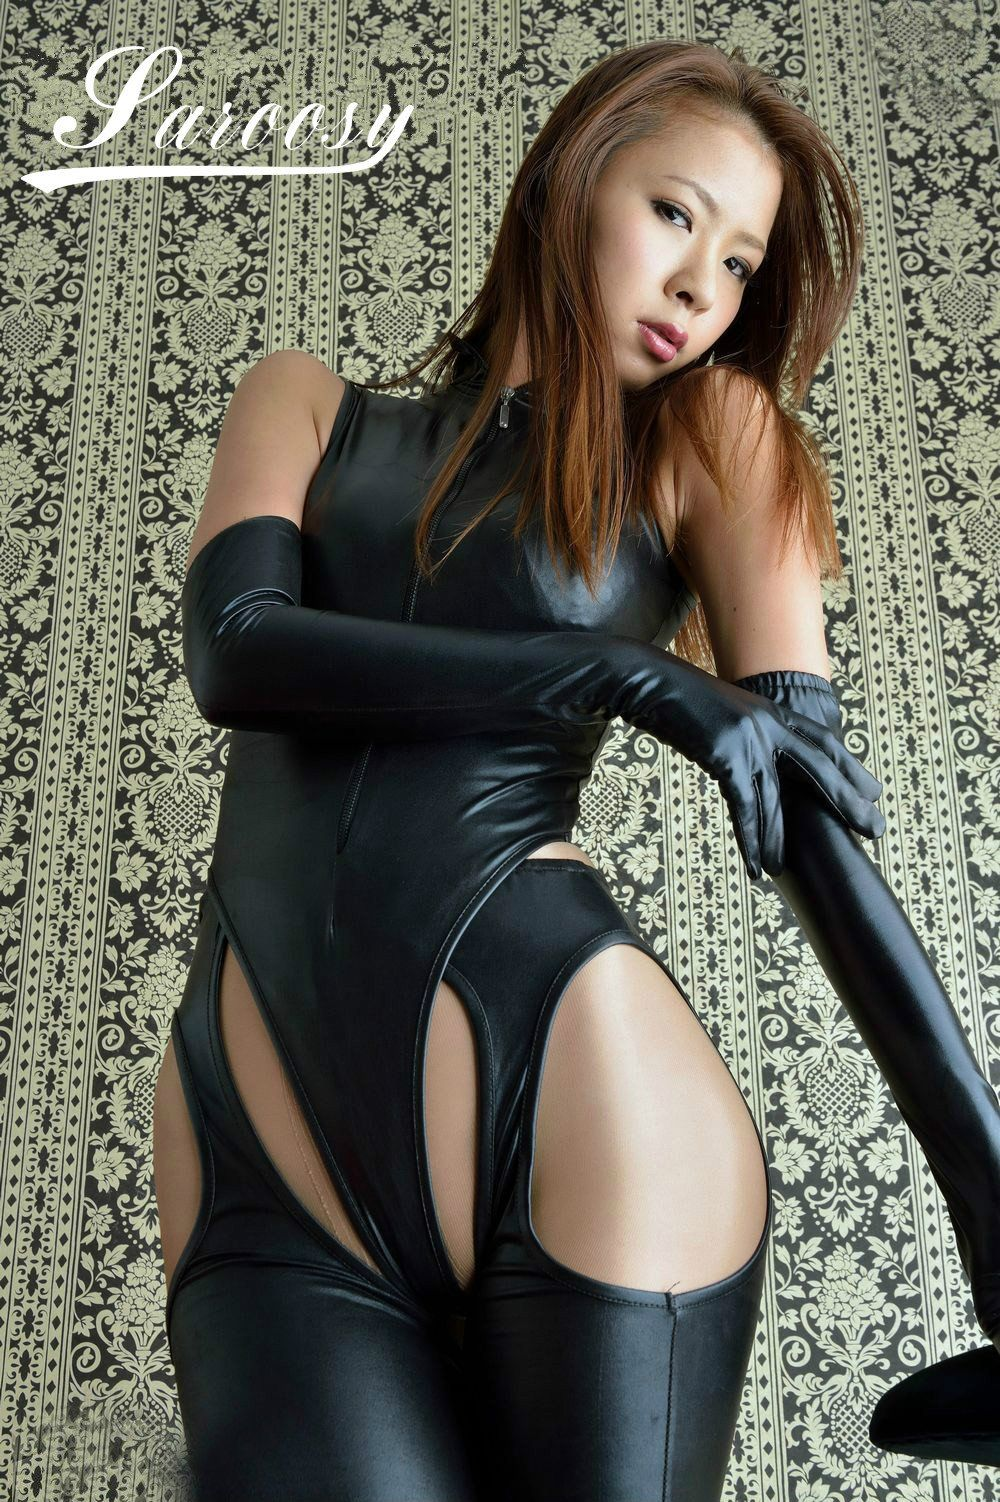 Holly Halston Latex for sexy lingerie for women hot black leather bodysuit with pants and